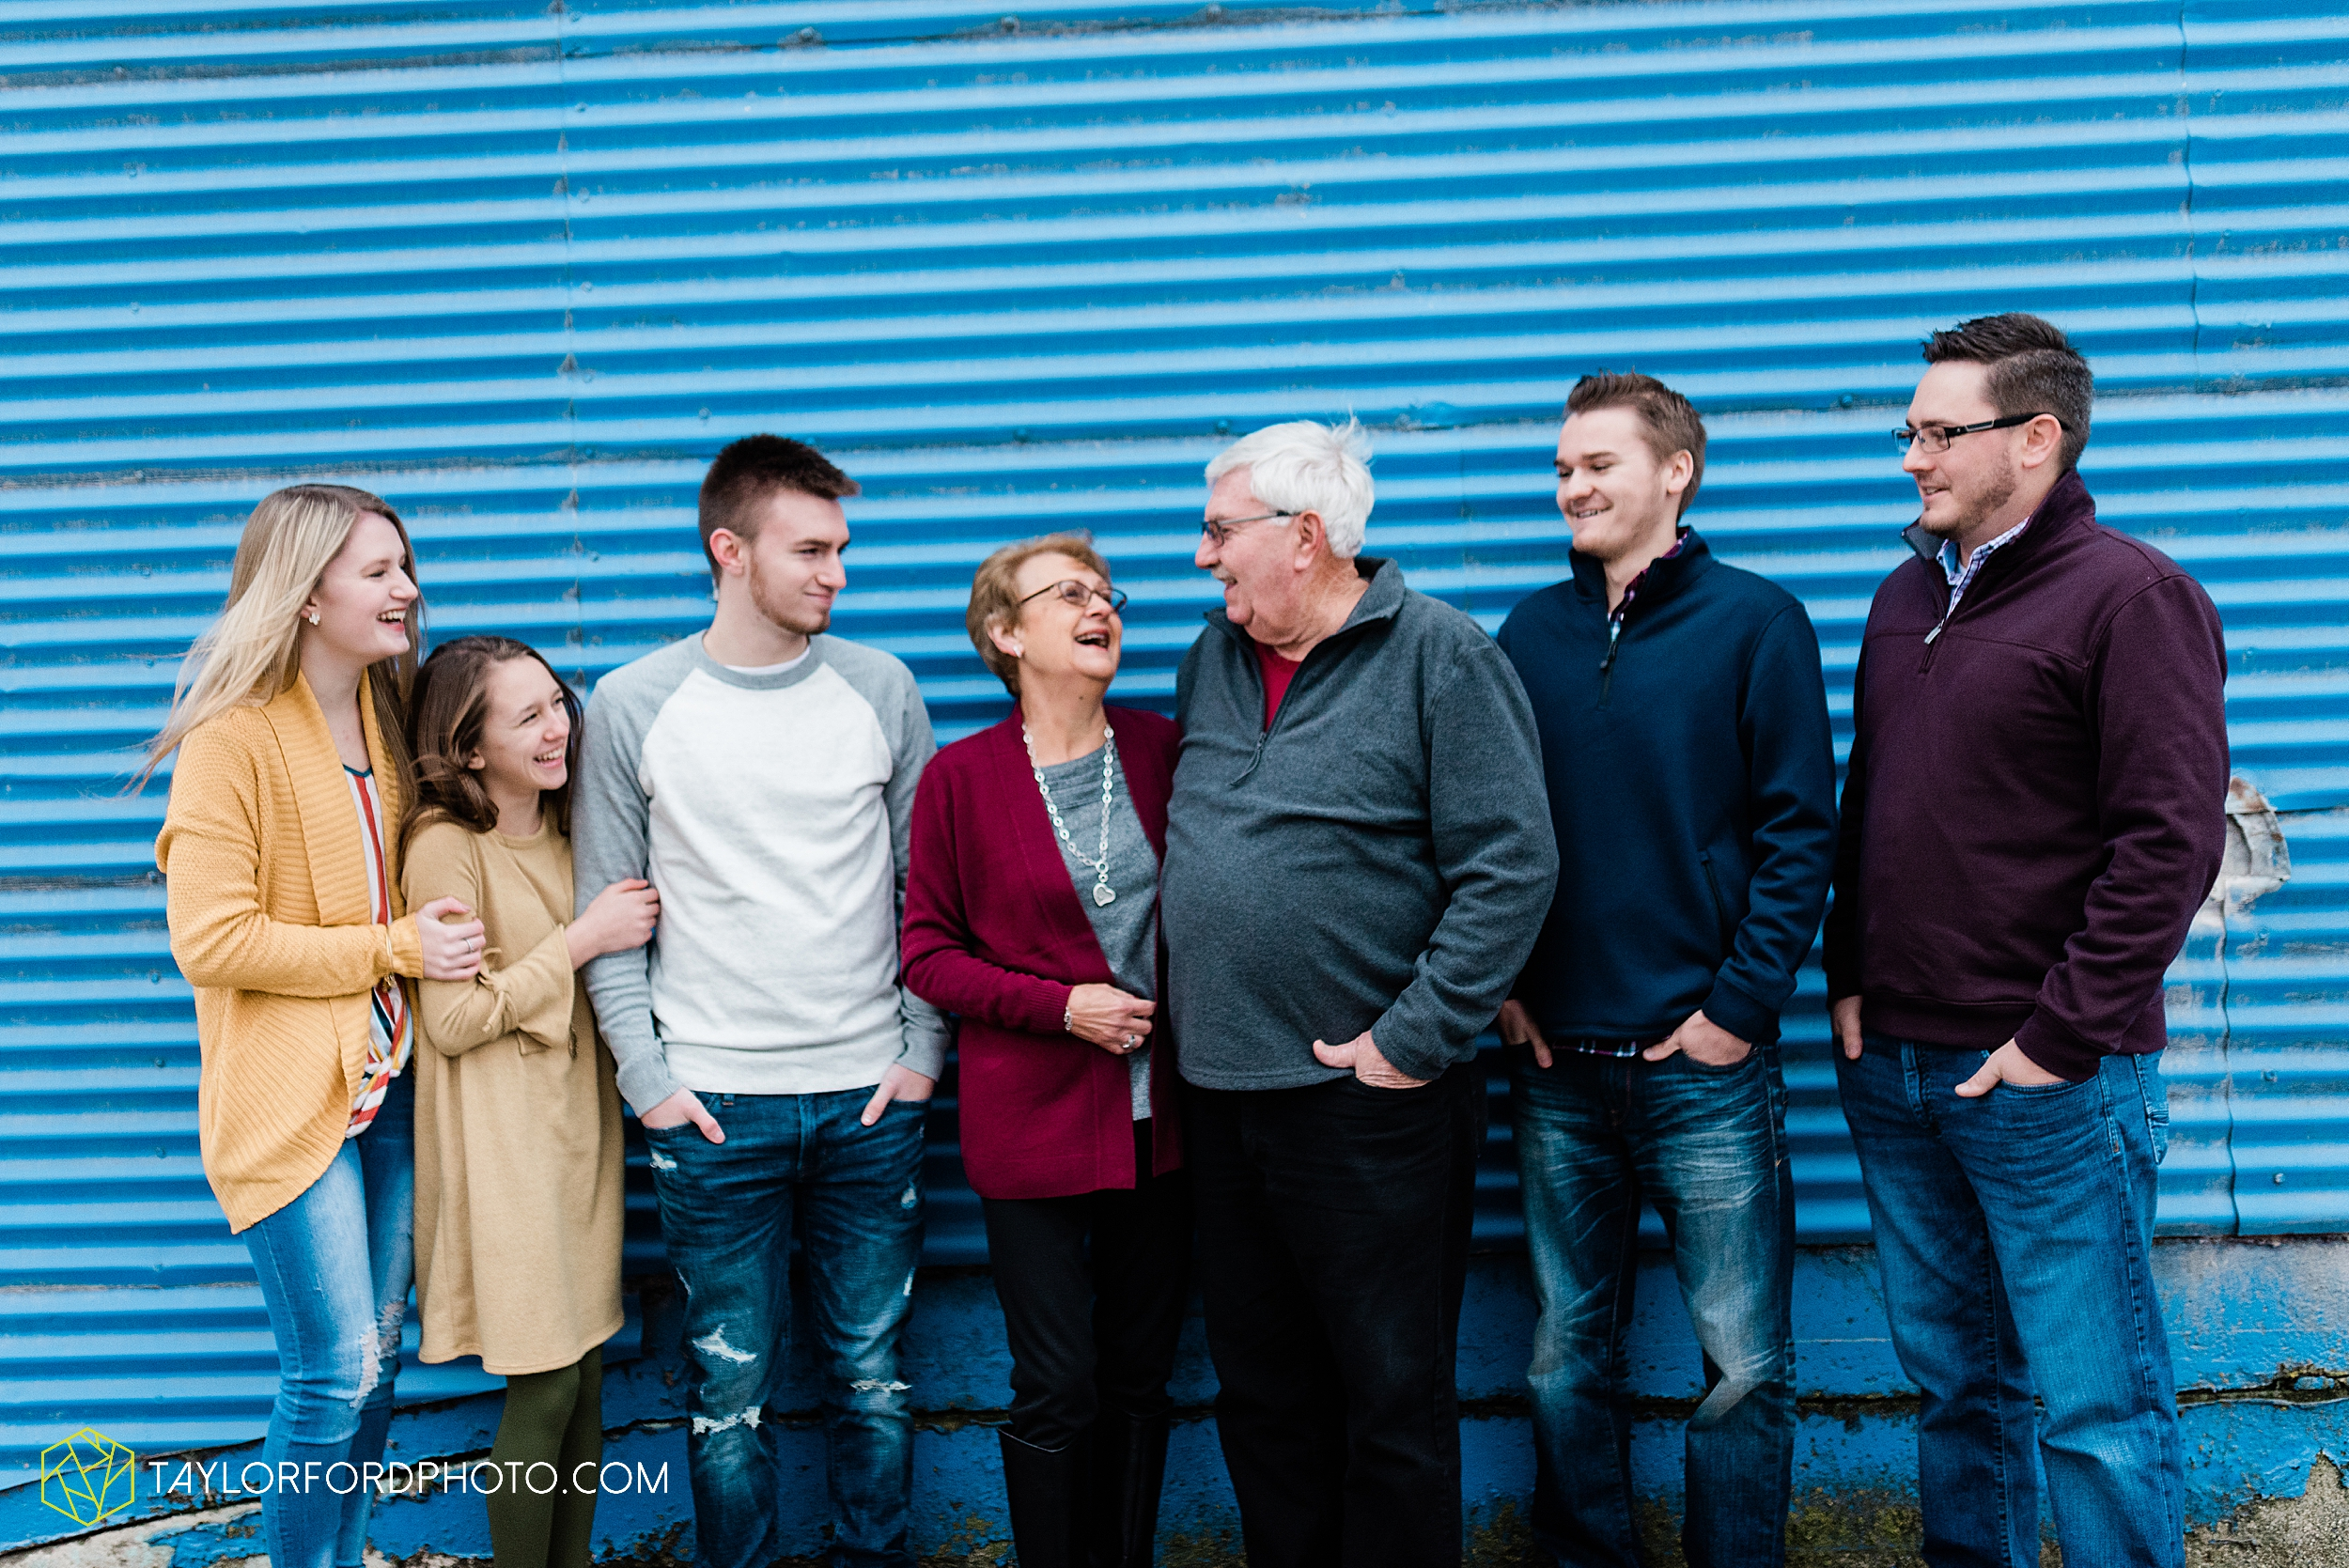 thompson-extended-family-van-wert-ohio-downtown-family-photography-taylor-ford-hirschy-photographer_2068.jpg